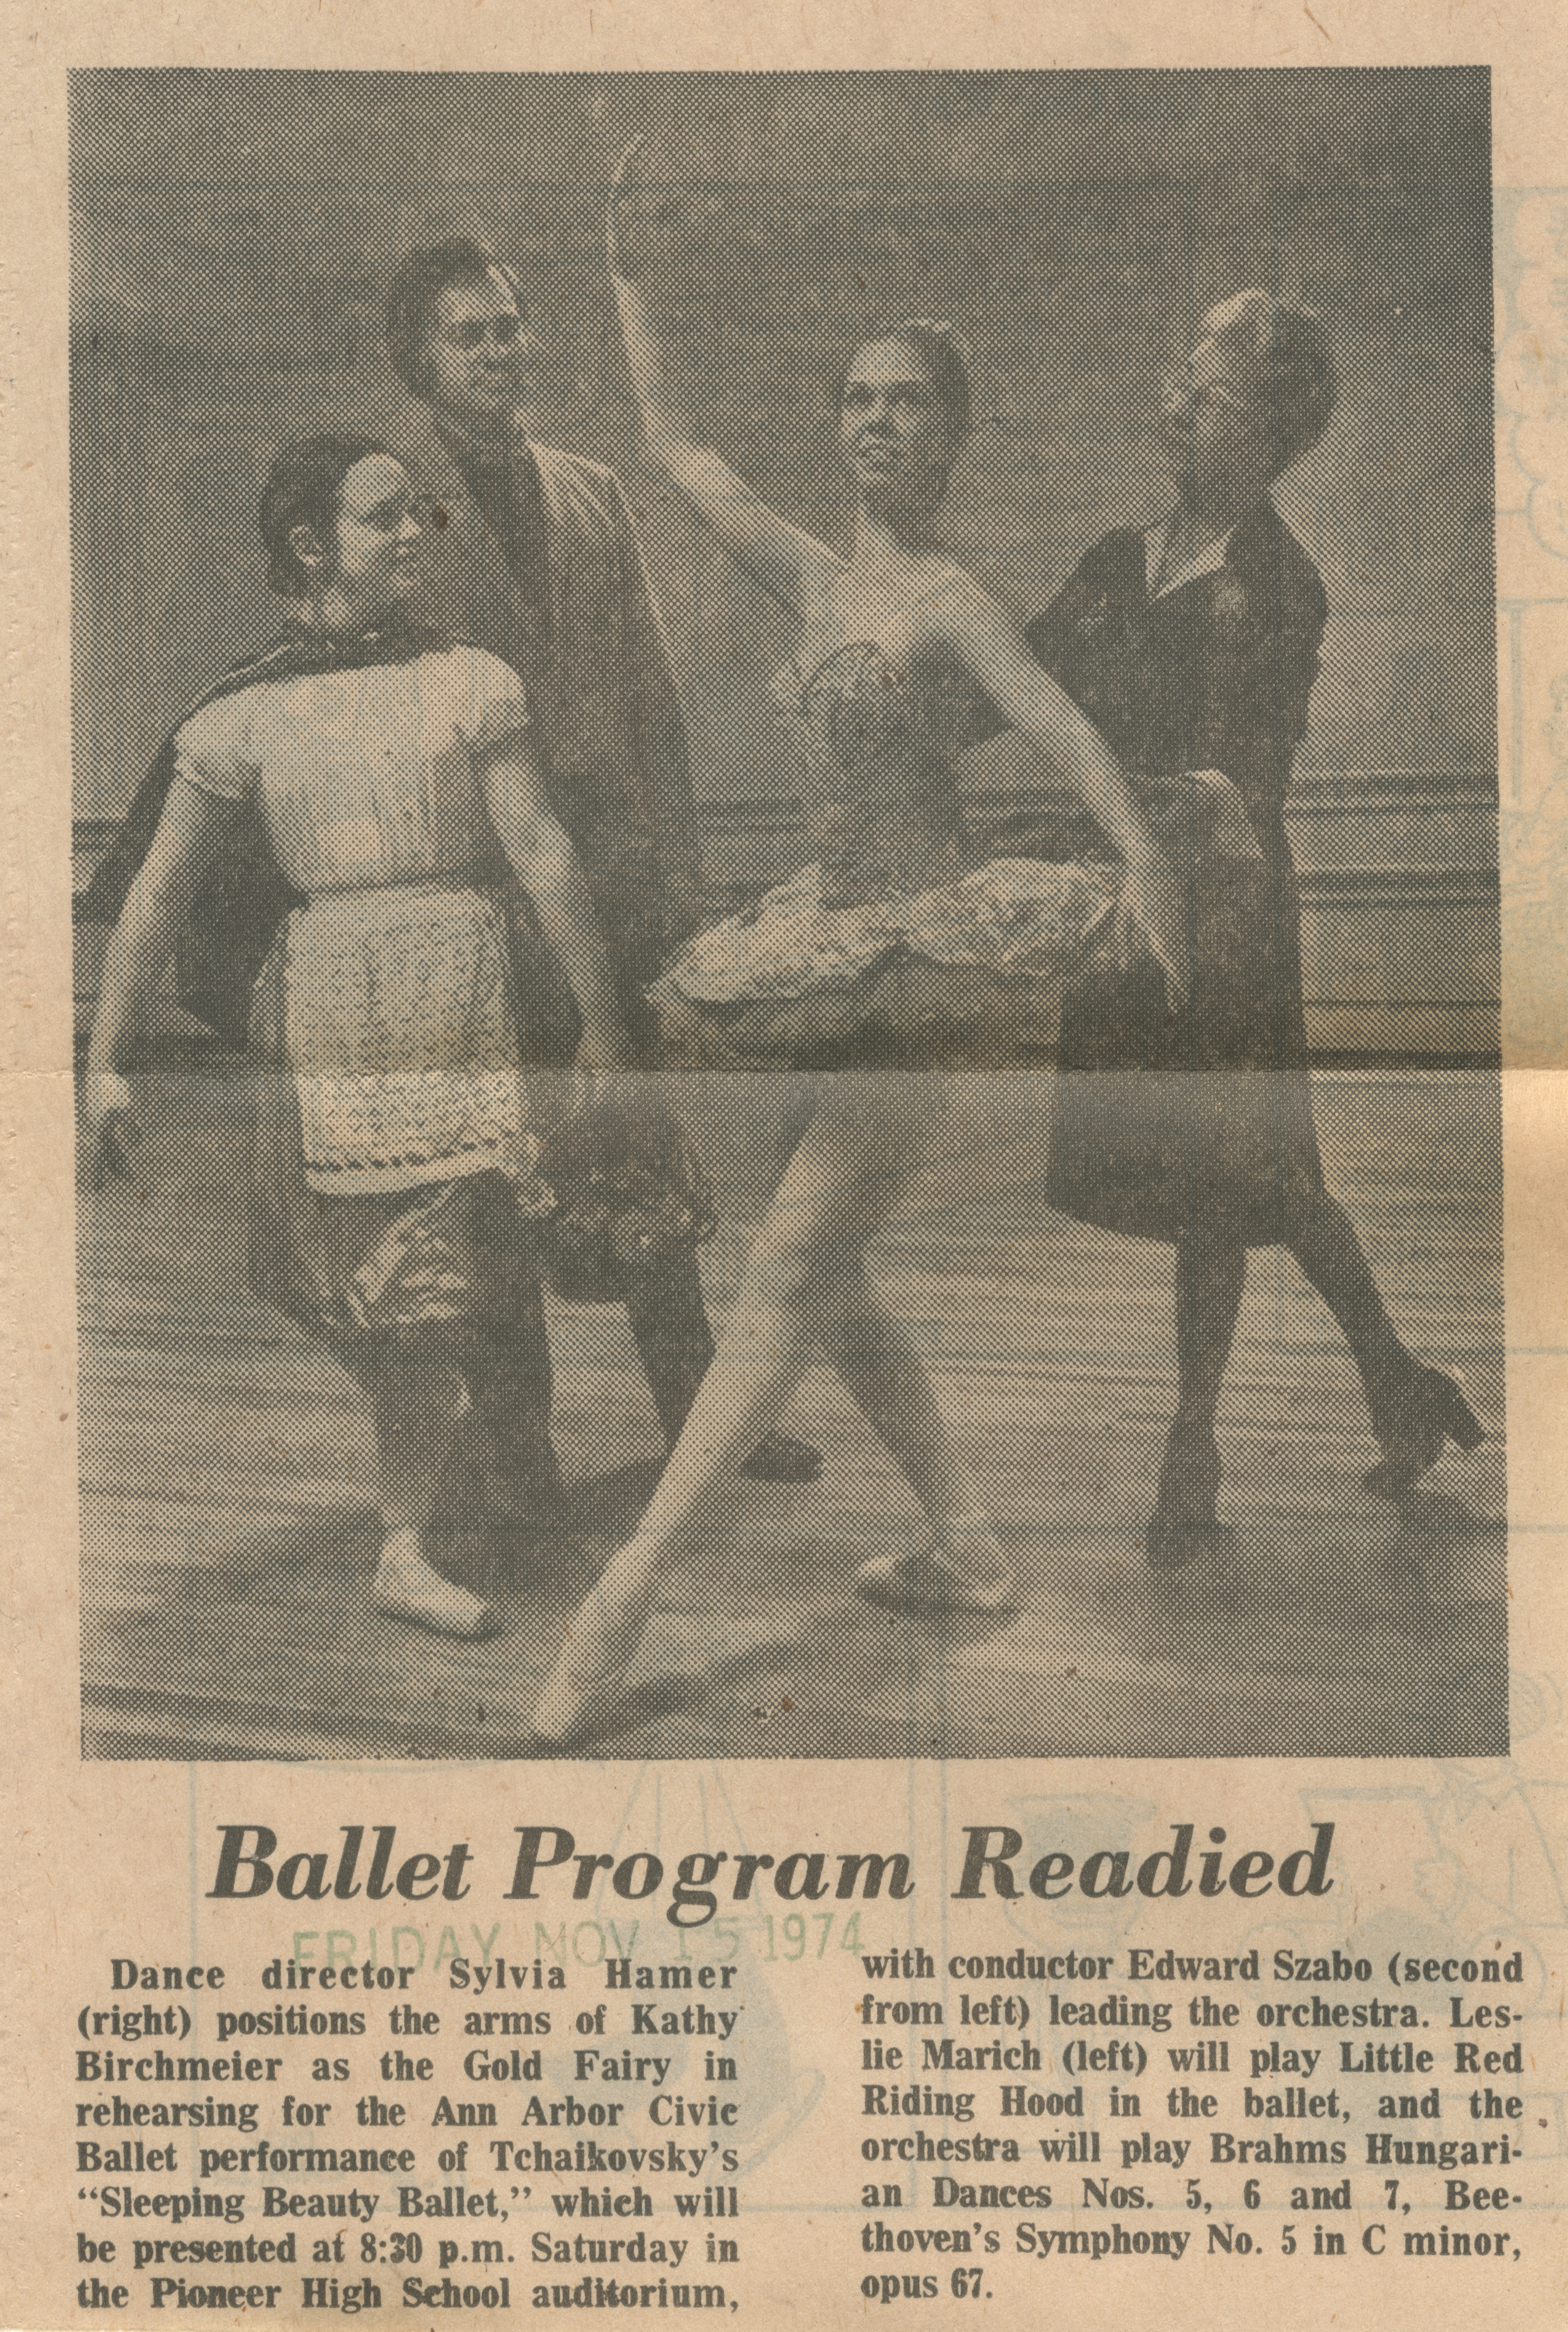 Ballet Program Readied image